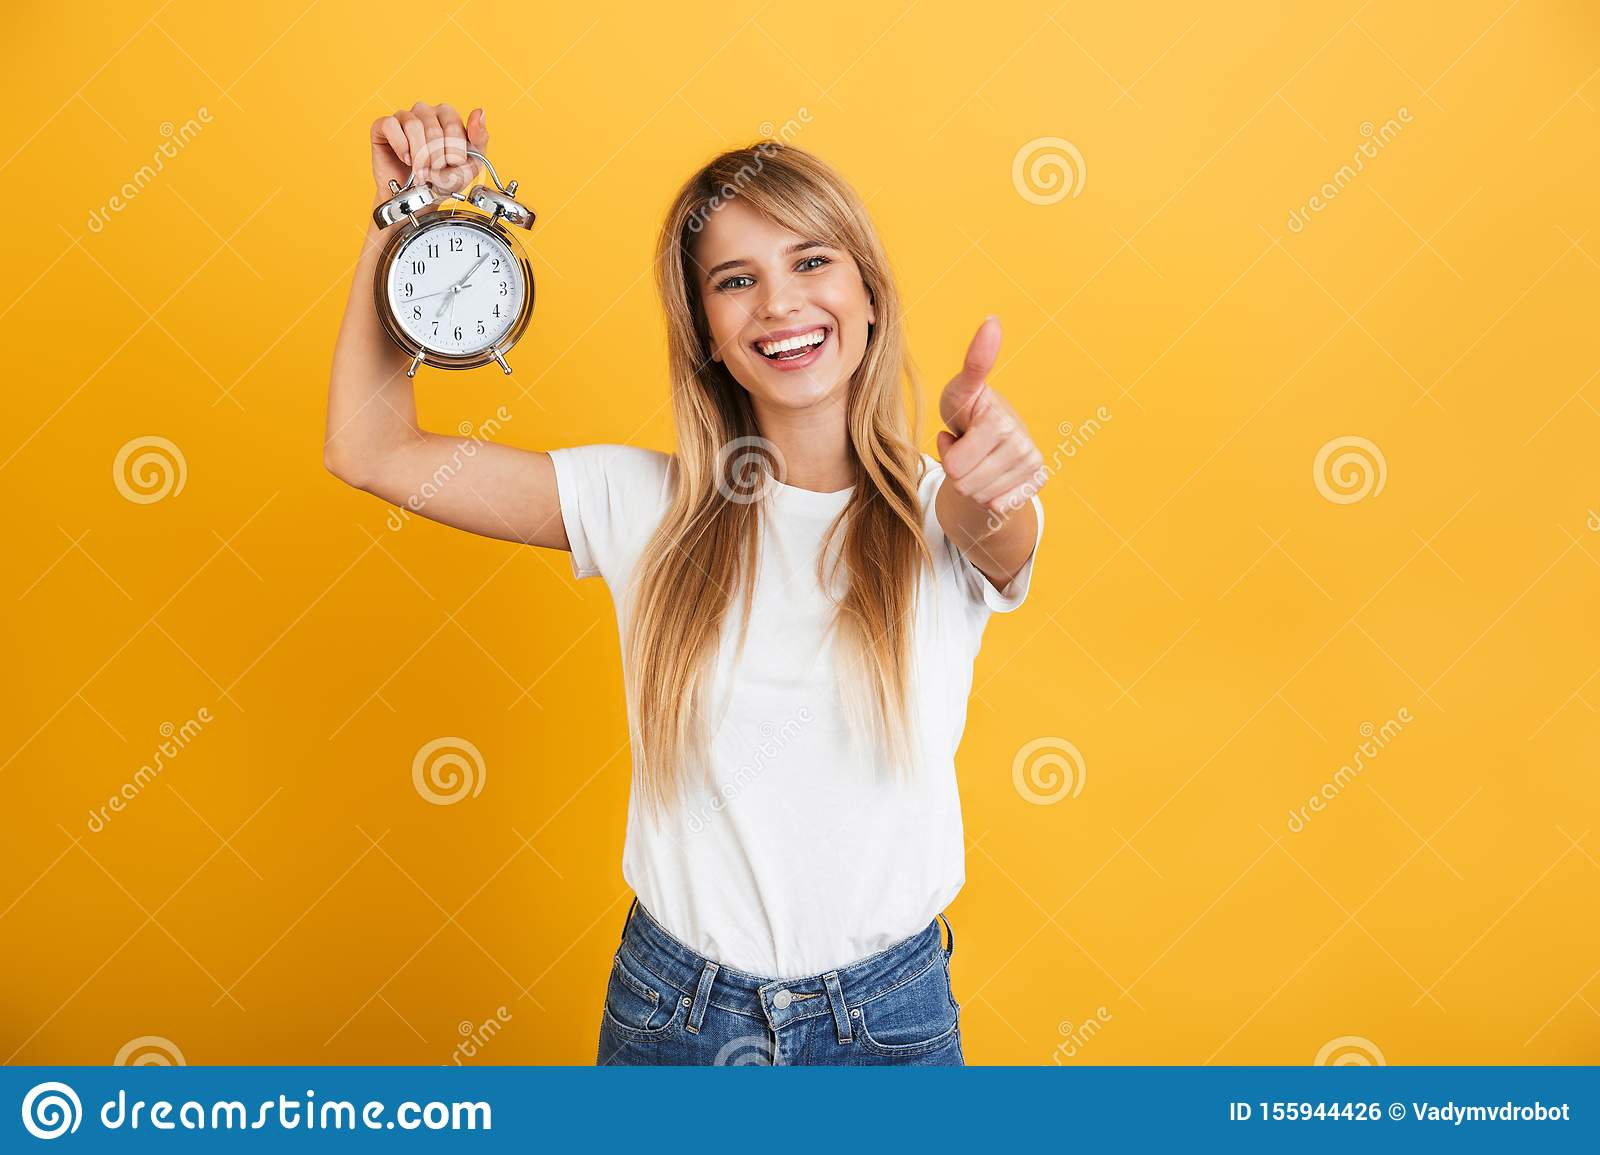 Happy smiling young blonde woman posing isolated over yellow wall background dressed in white casual t-shirt holding alarm clock